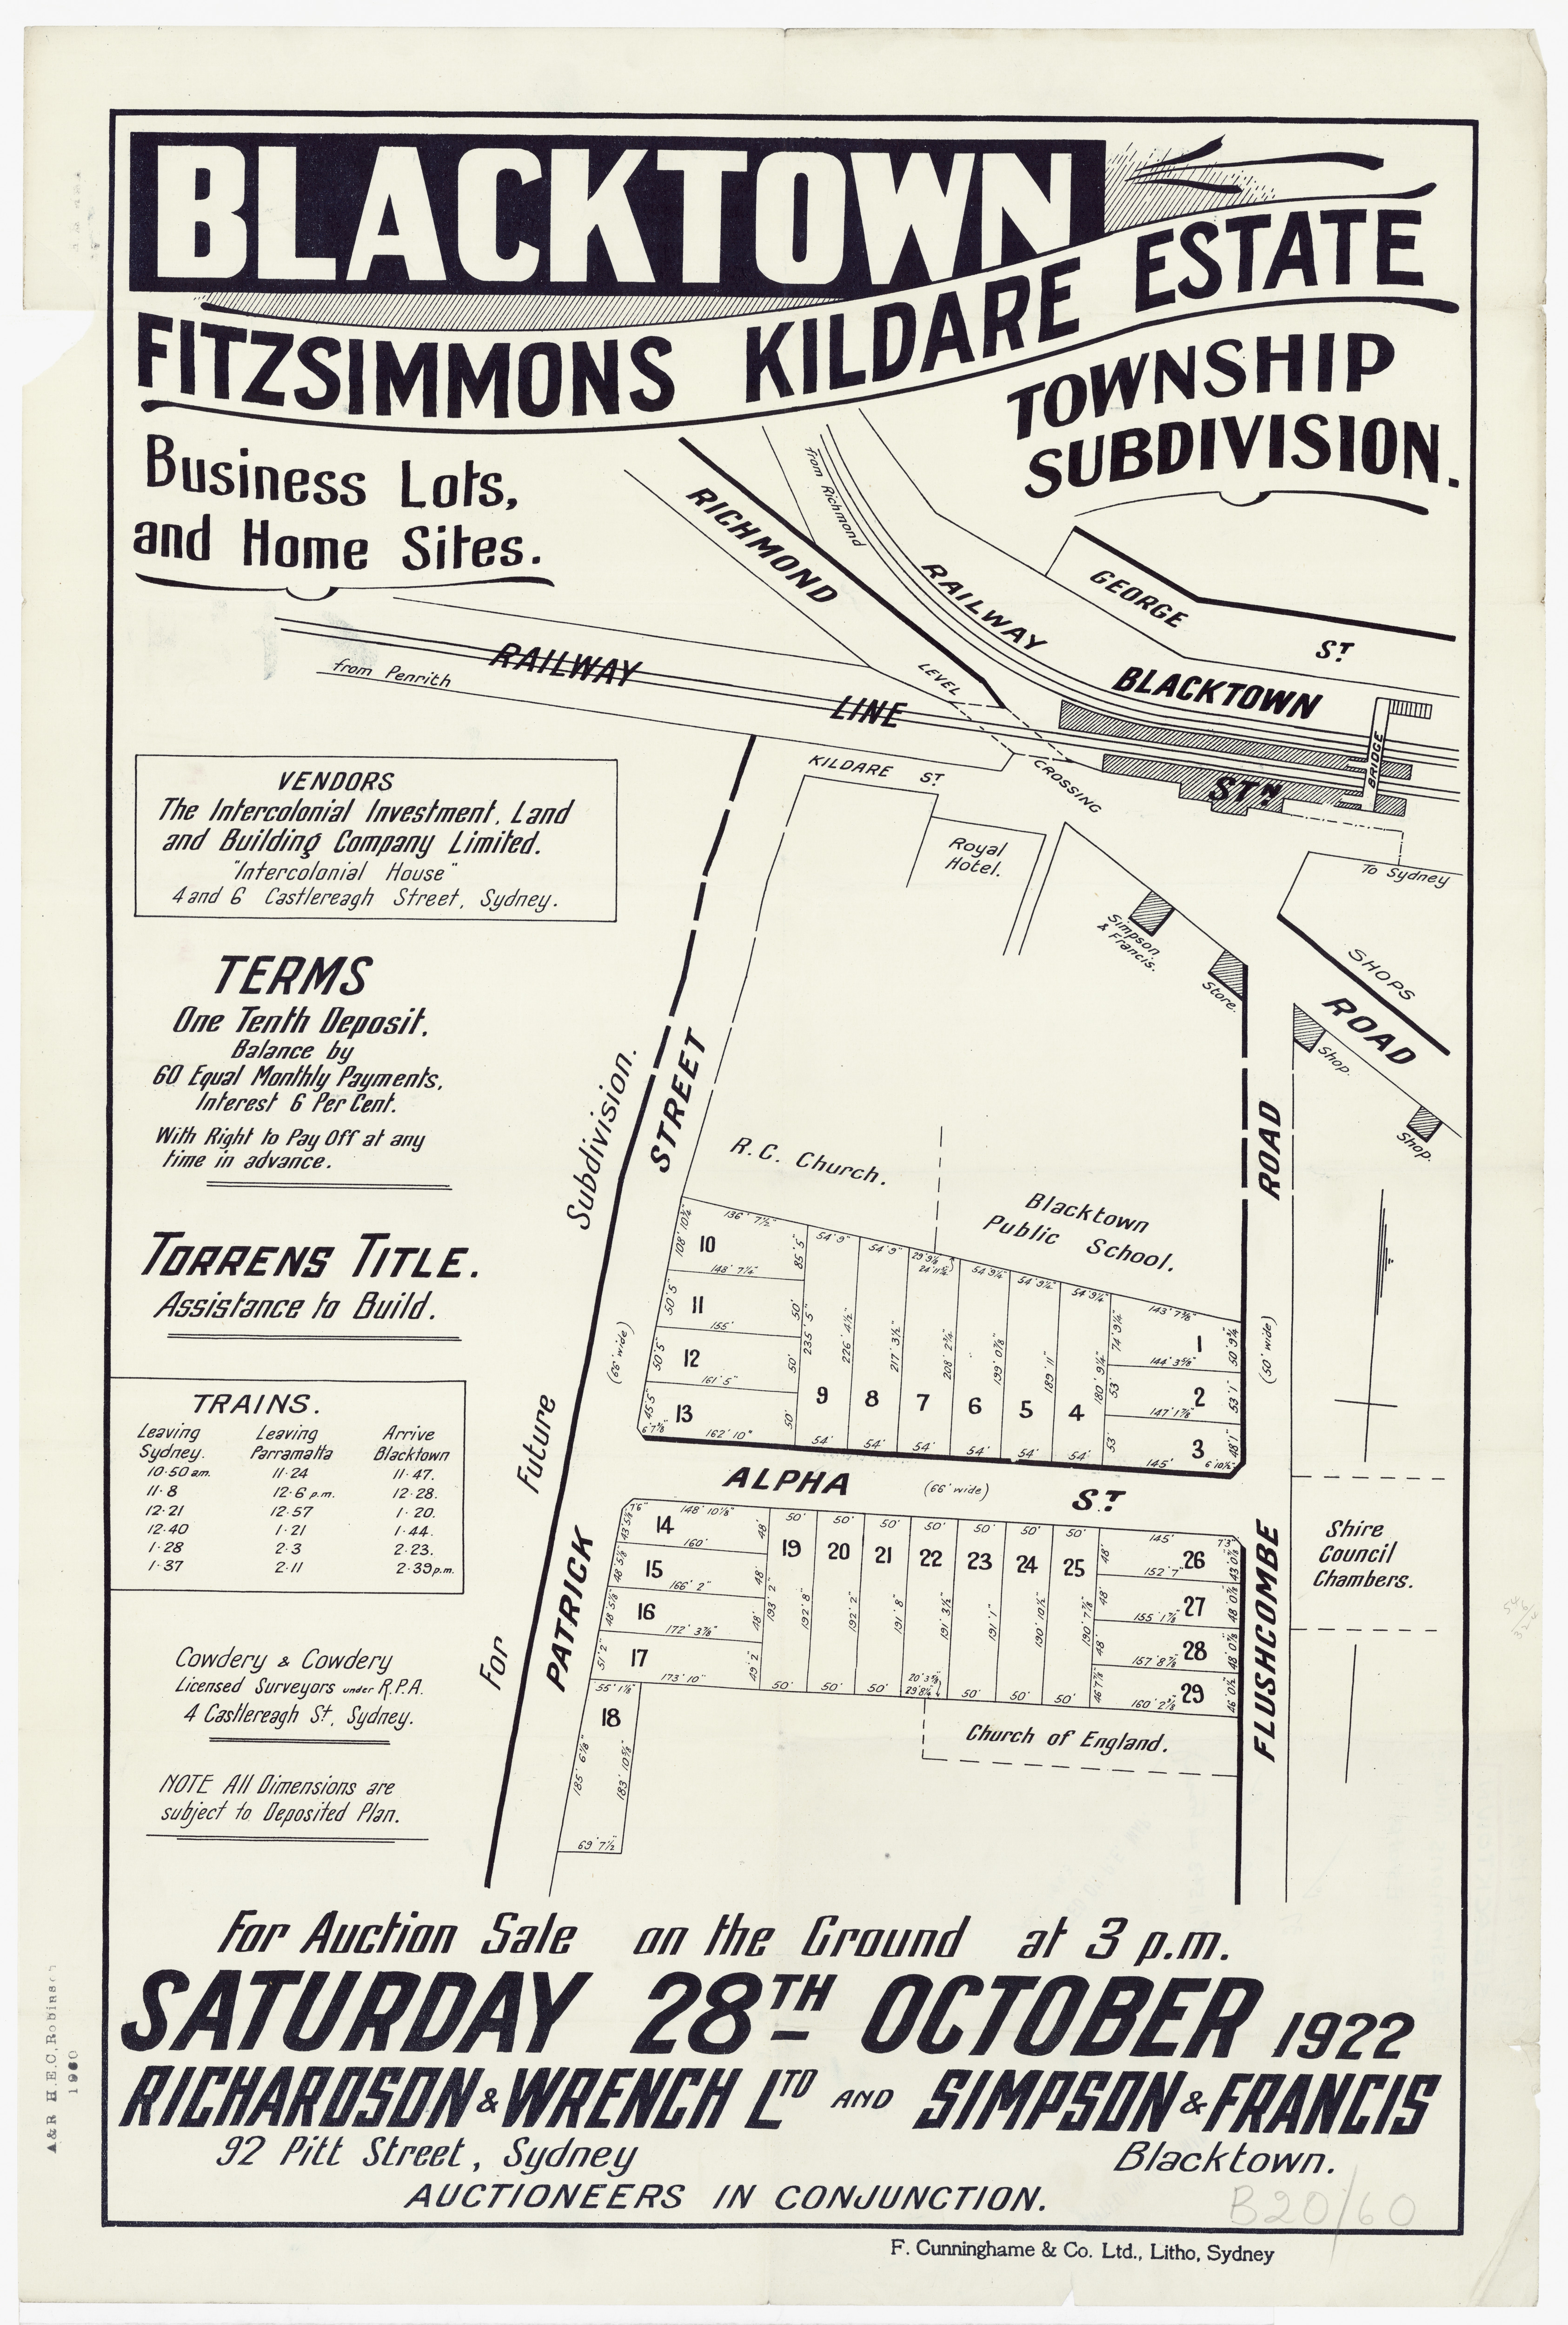 Subdivision Plan: 074 - Z/SP/B20/60 - Blacktown Fitzsimmons Kildare Estate Township subdivision - Patrick St, Flushcombe Rd , 1922